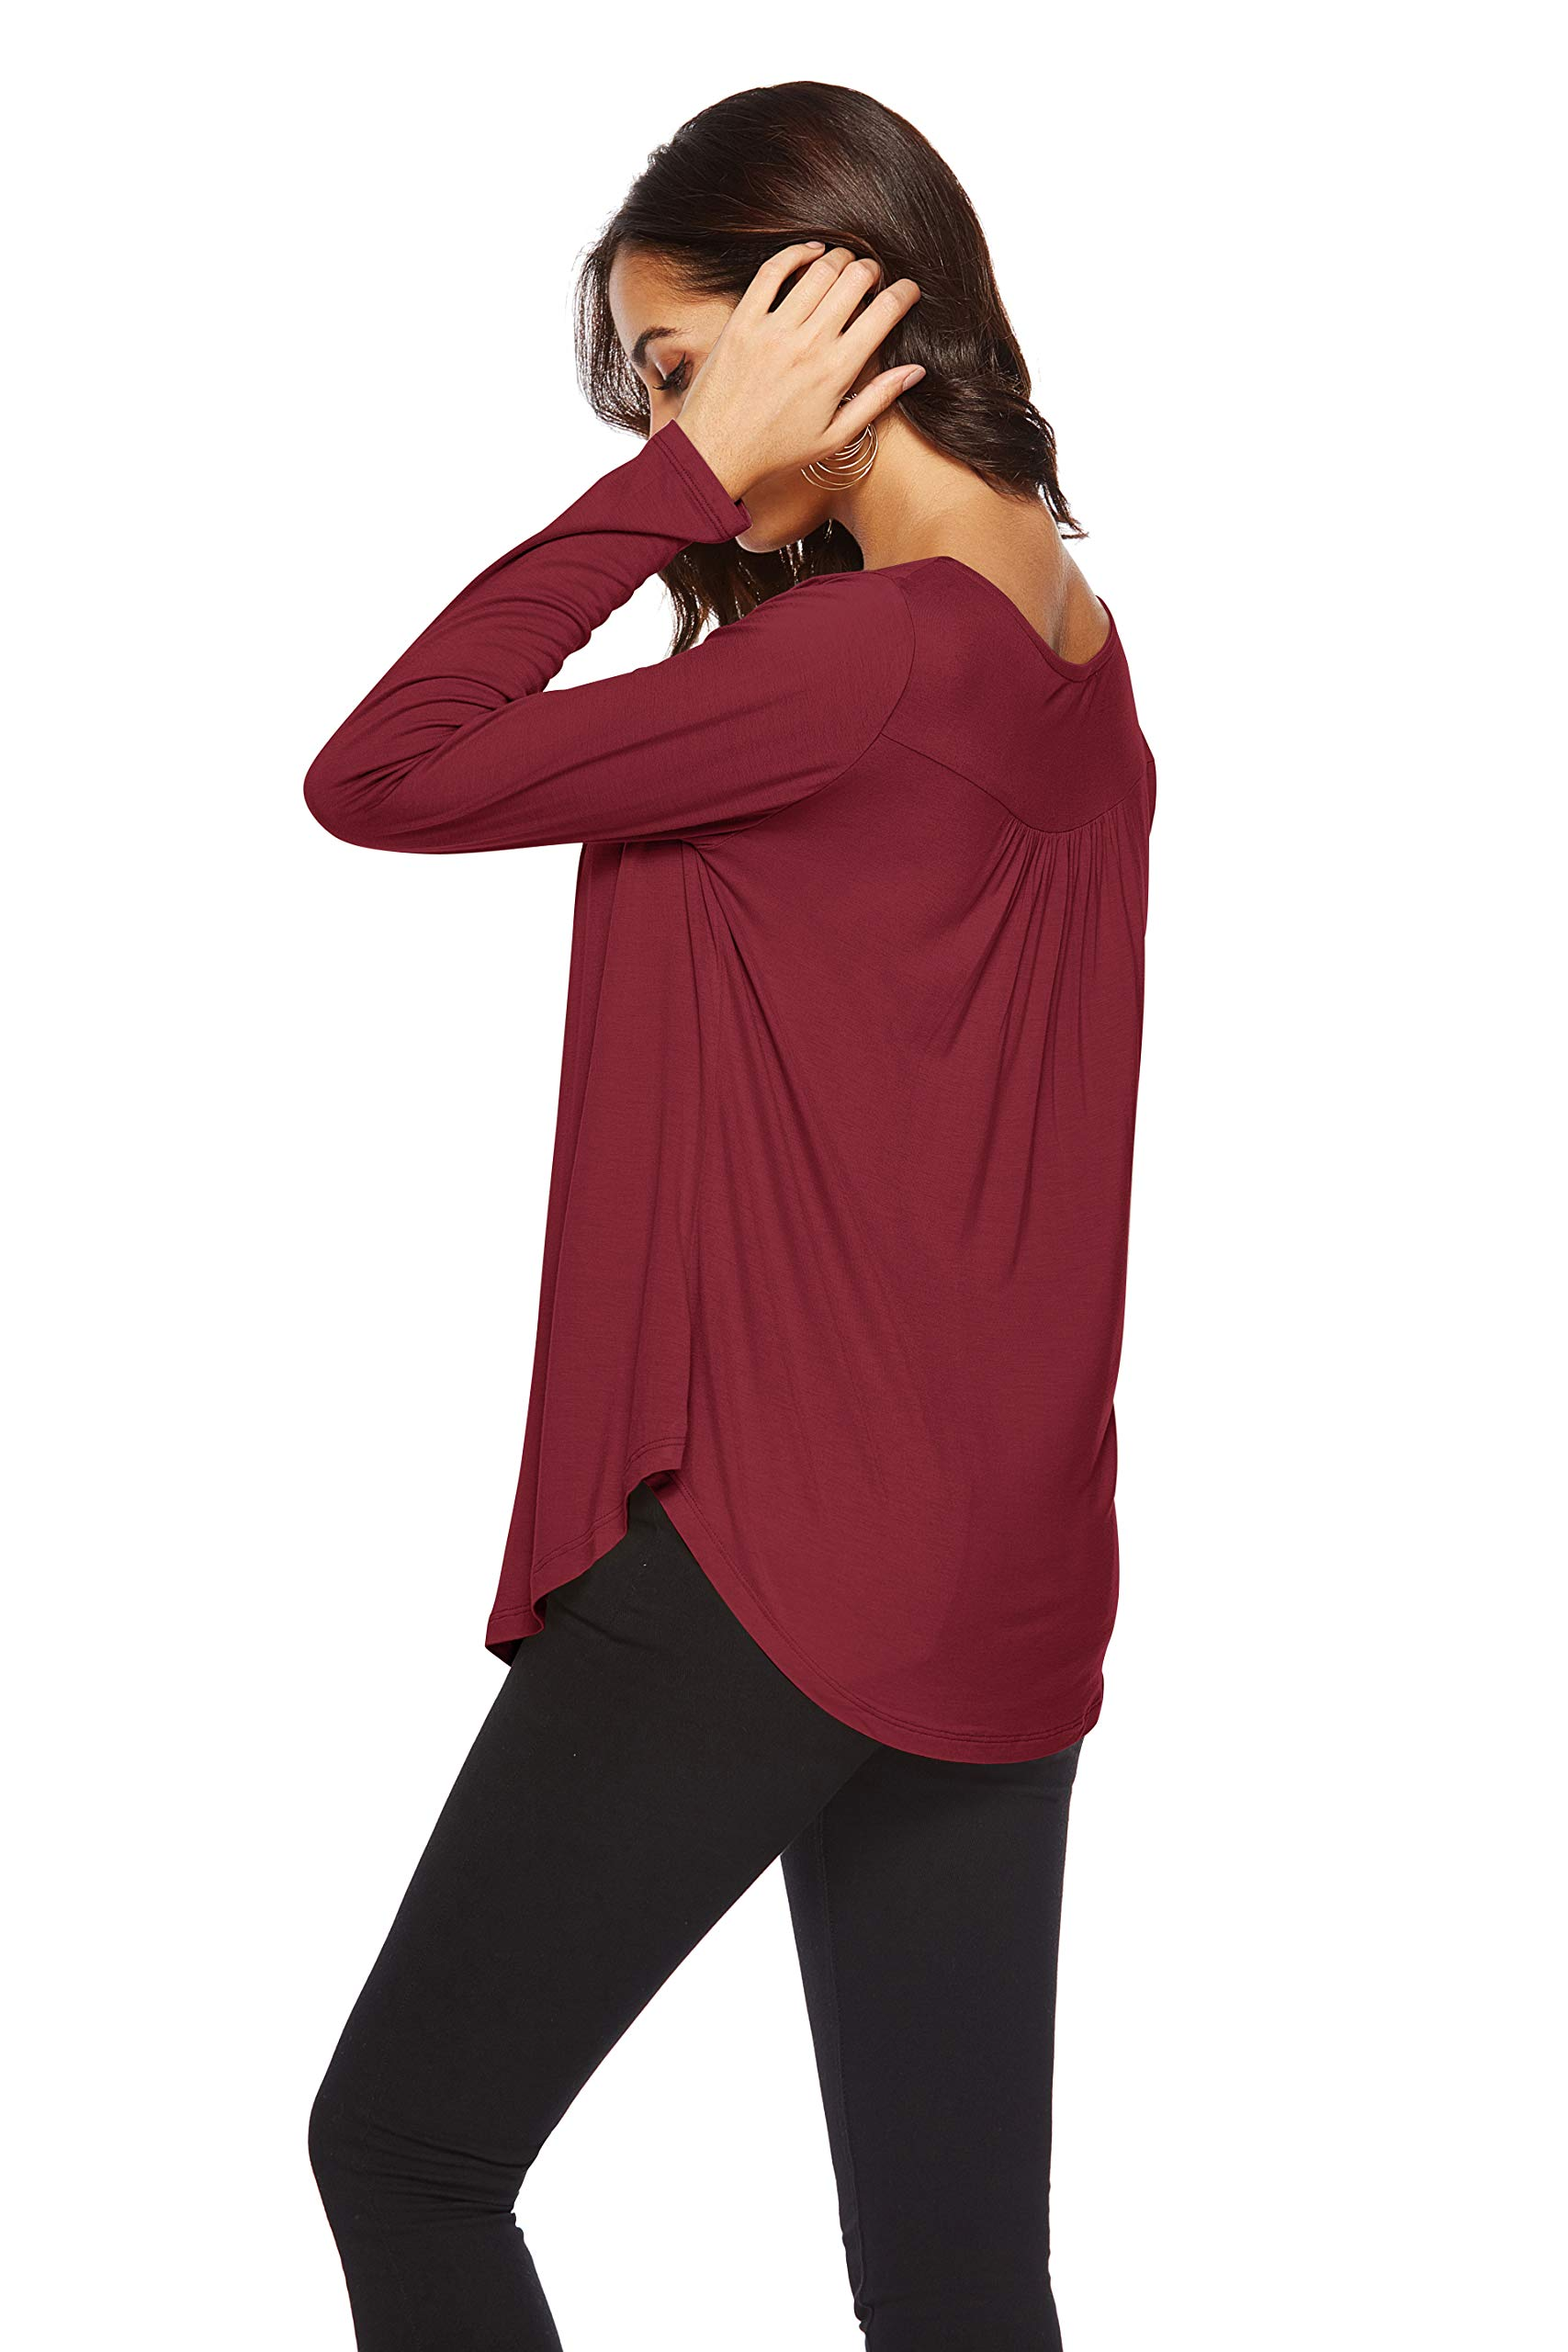 Eanklosco Womens Tops V Neck T-Shirts Swing Ruffle Blouses Button up Tunic Casual Flowy Long Sleeve (Wine Red, XL)